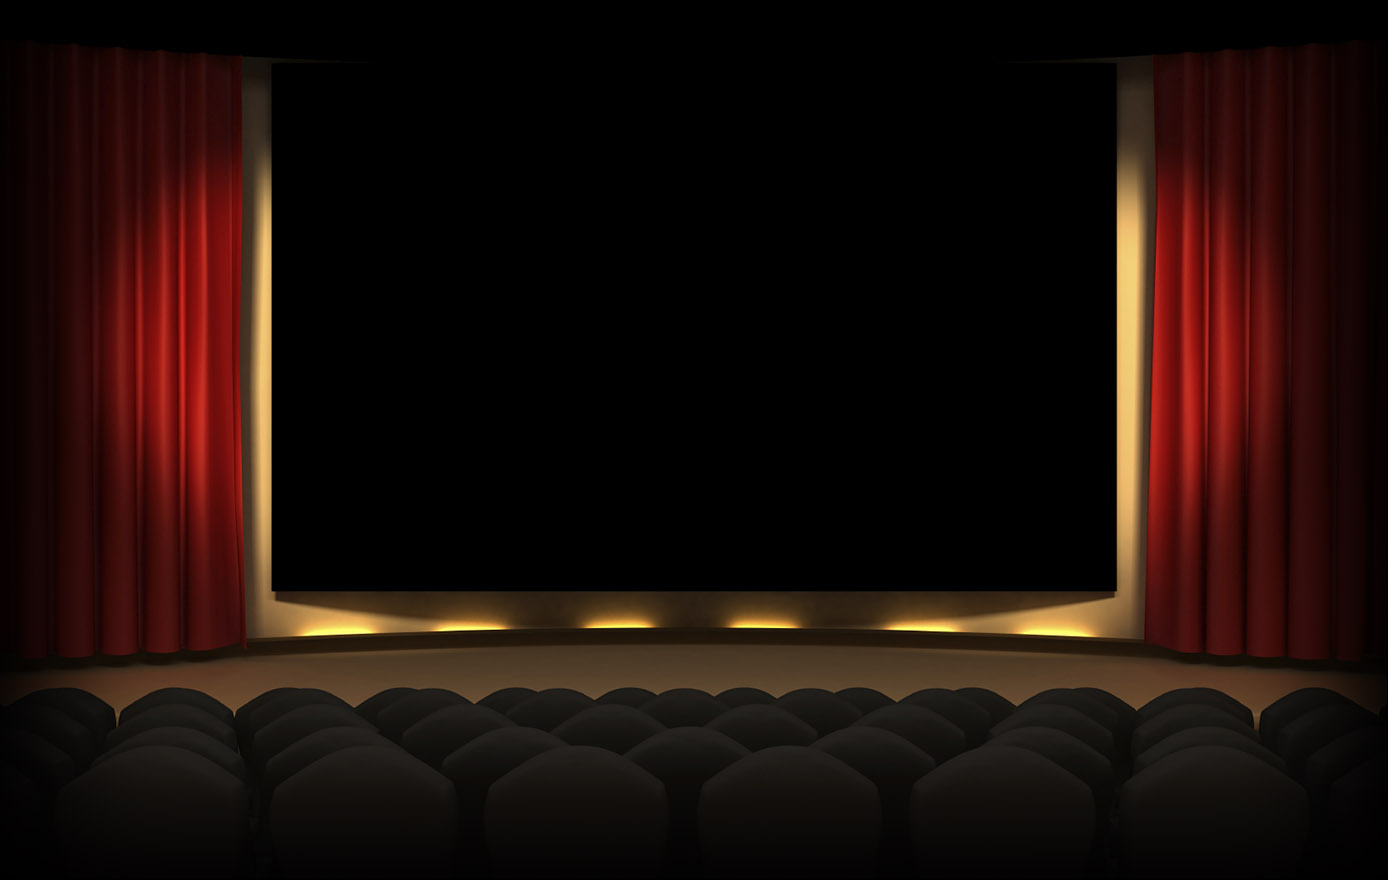 Free Download Movie Theater Background For Youtube Videos